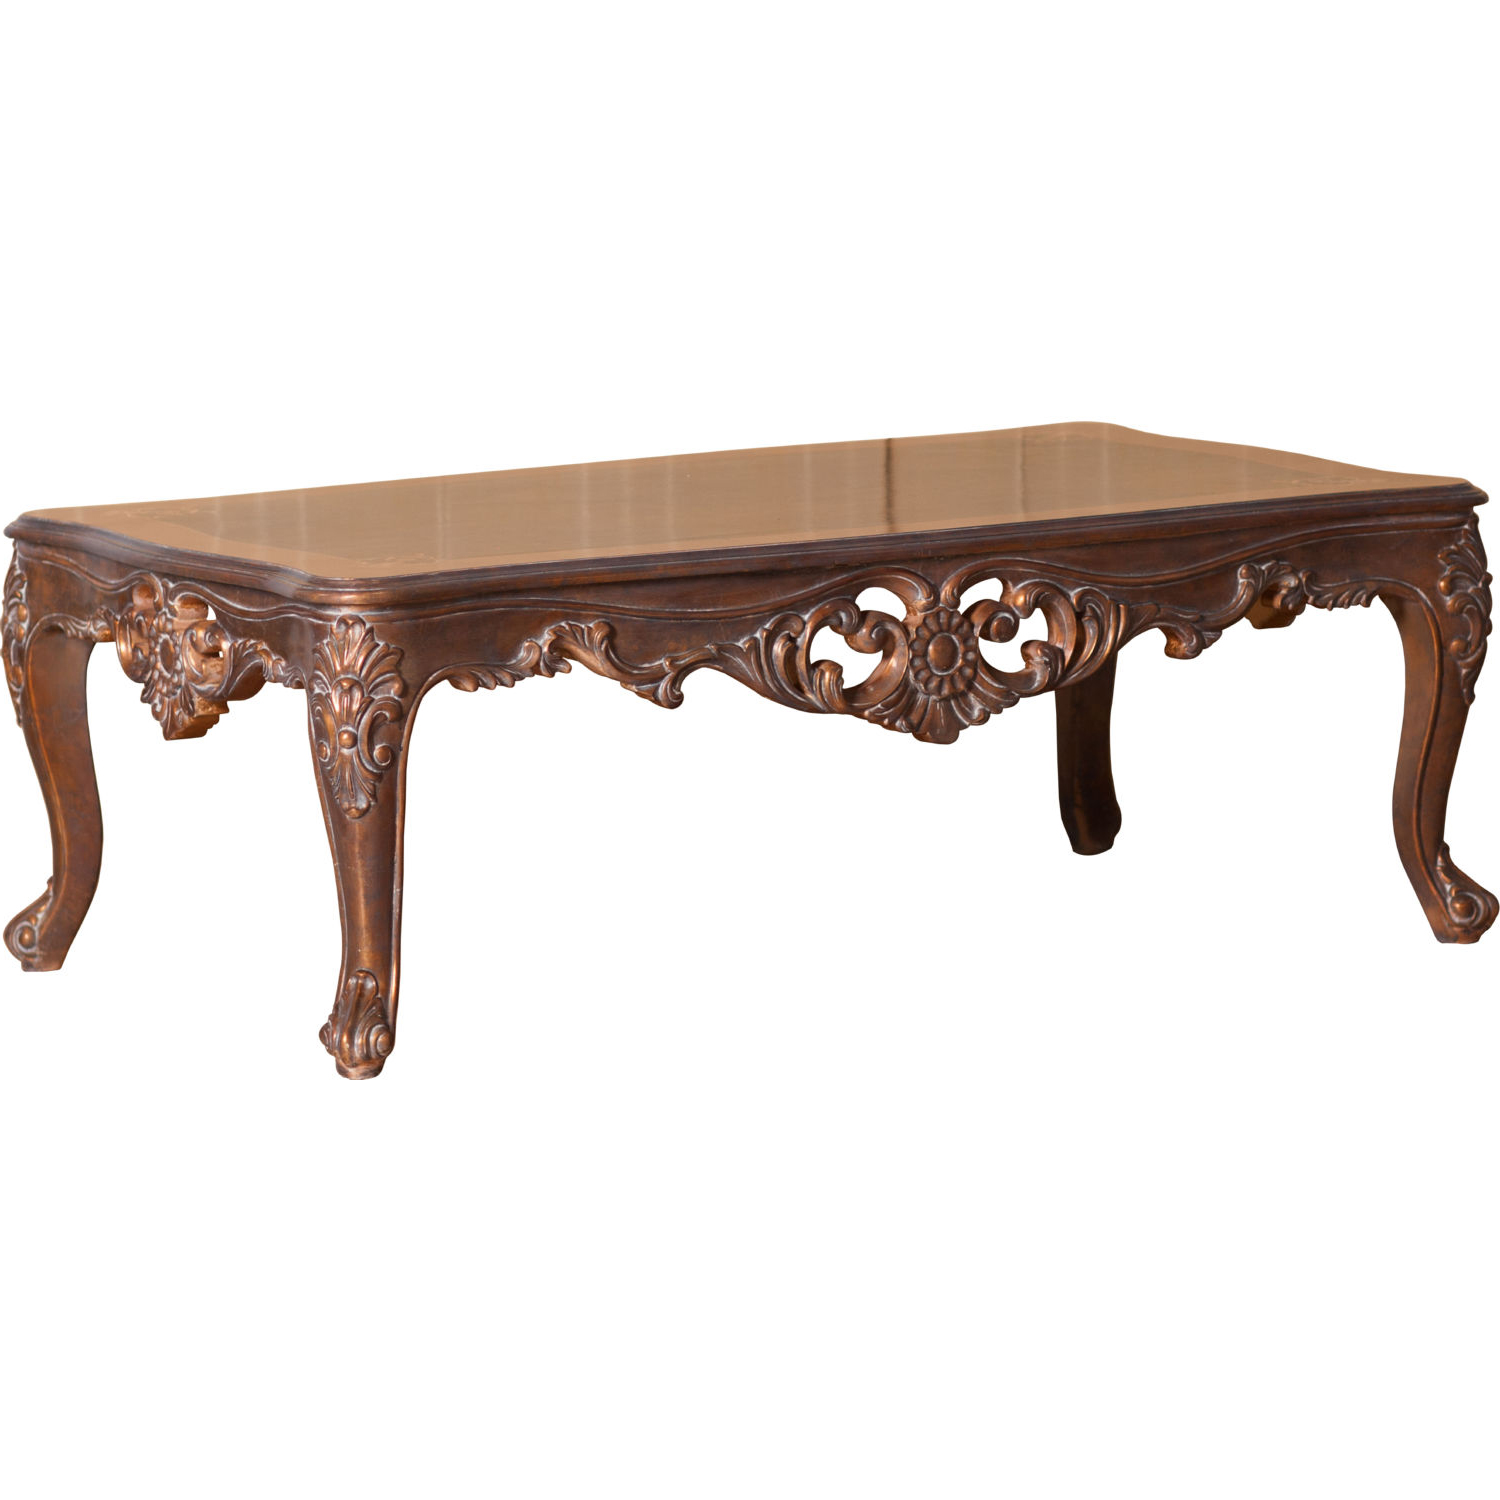 Victorian Coffee Table Furniture: Grand European Luxury Furniture 33091-CT Victorian Coffee